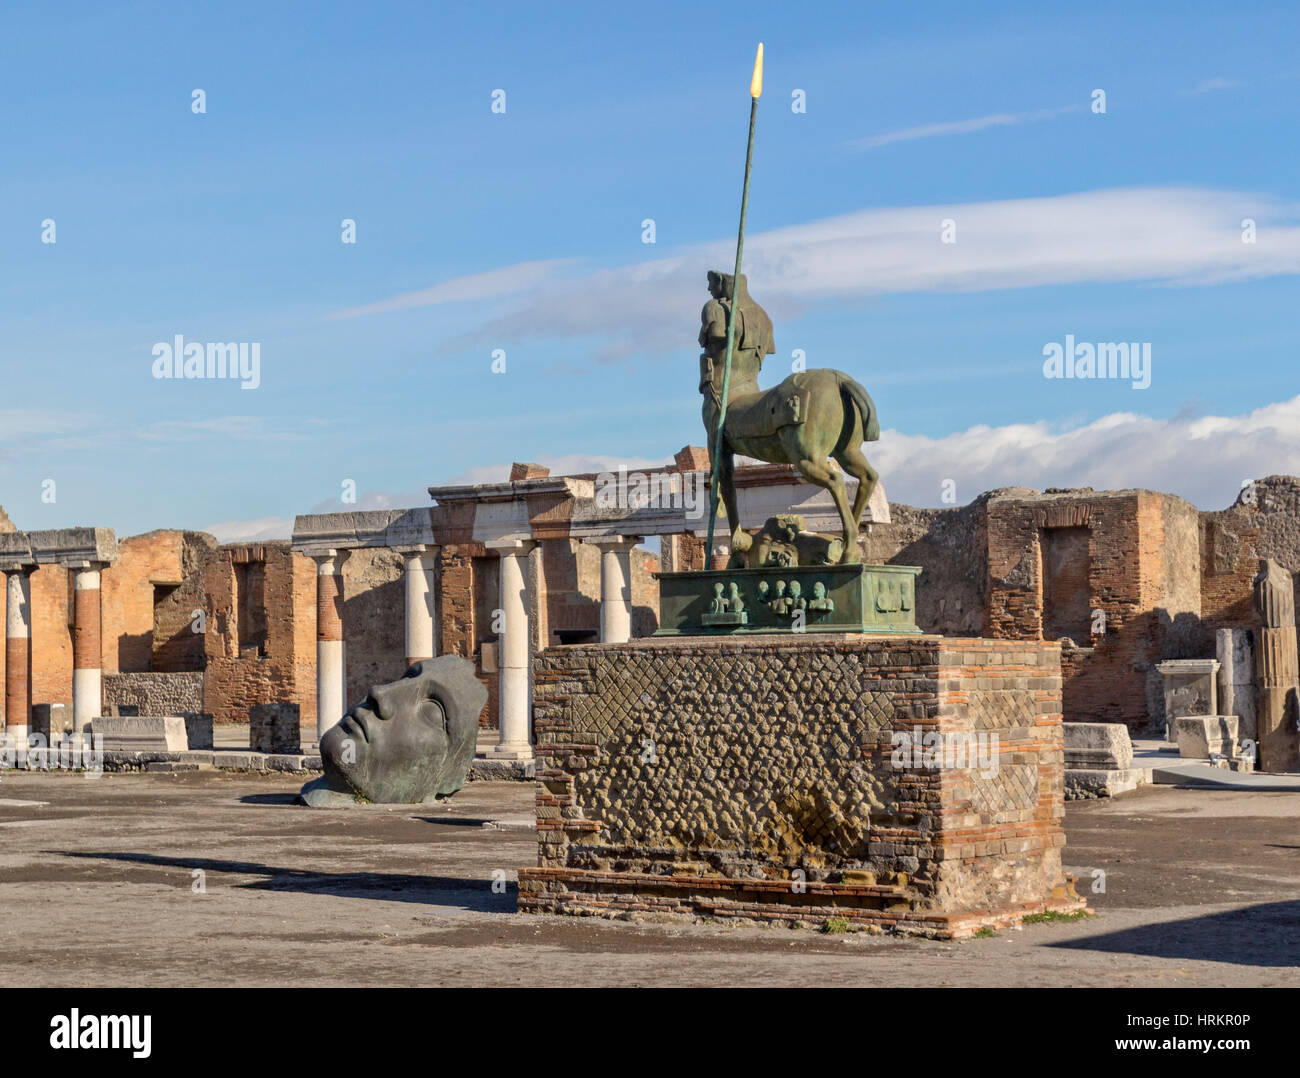 A view ancient ruins in city of Pompeii, Italy. - Stock Image